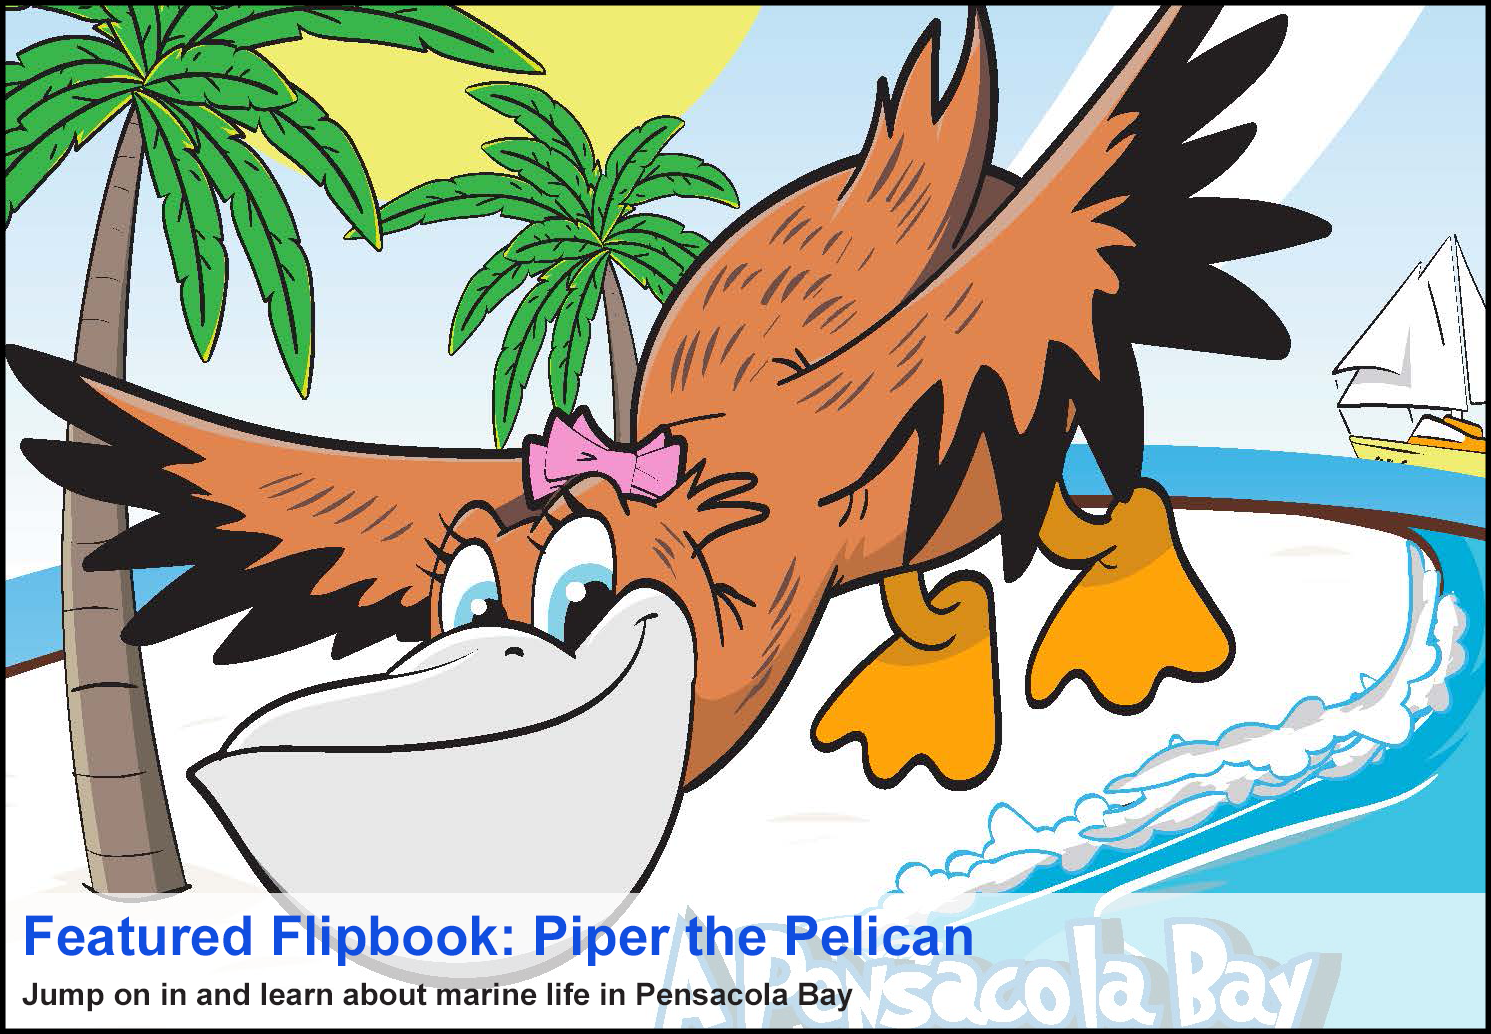 Piper the Pelican Flipbook